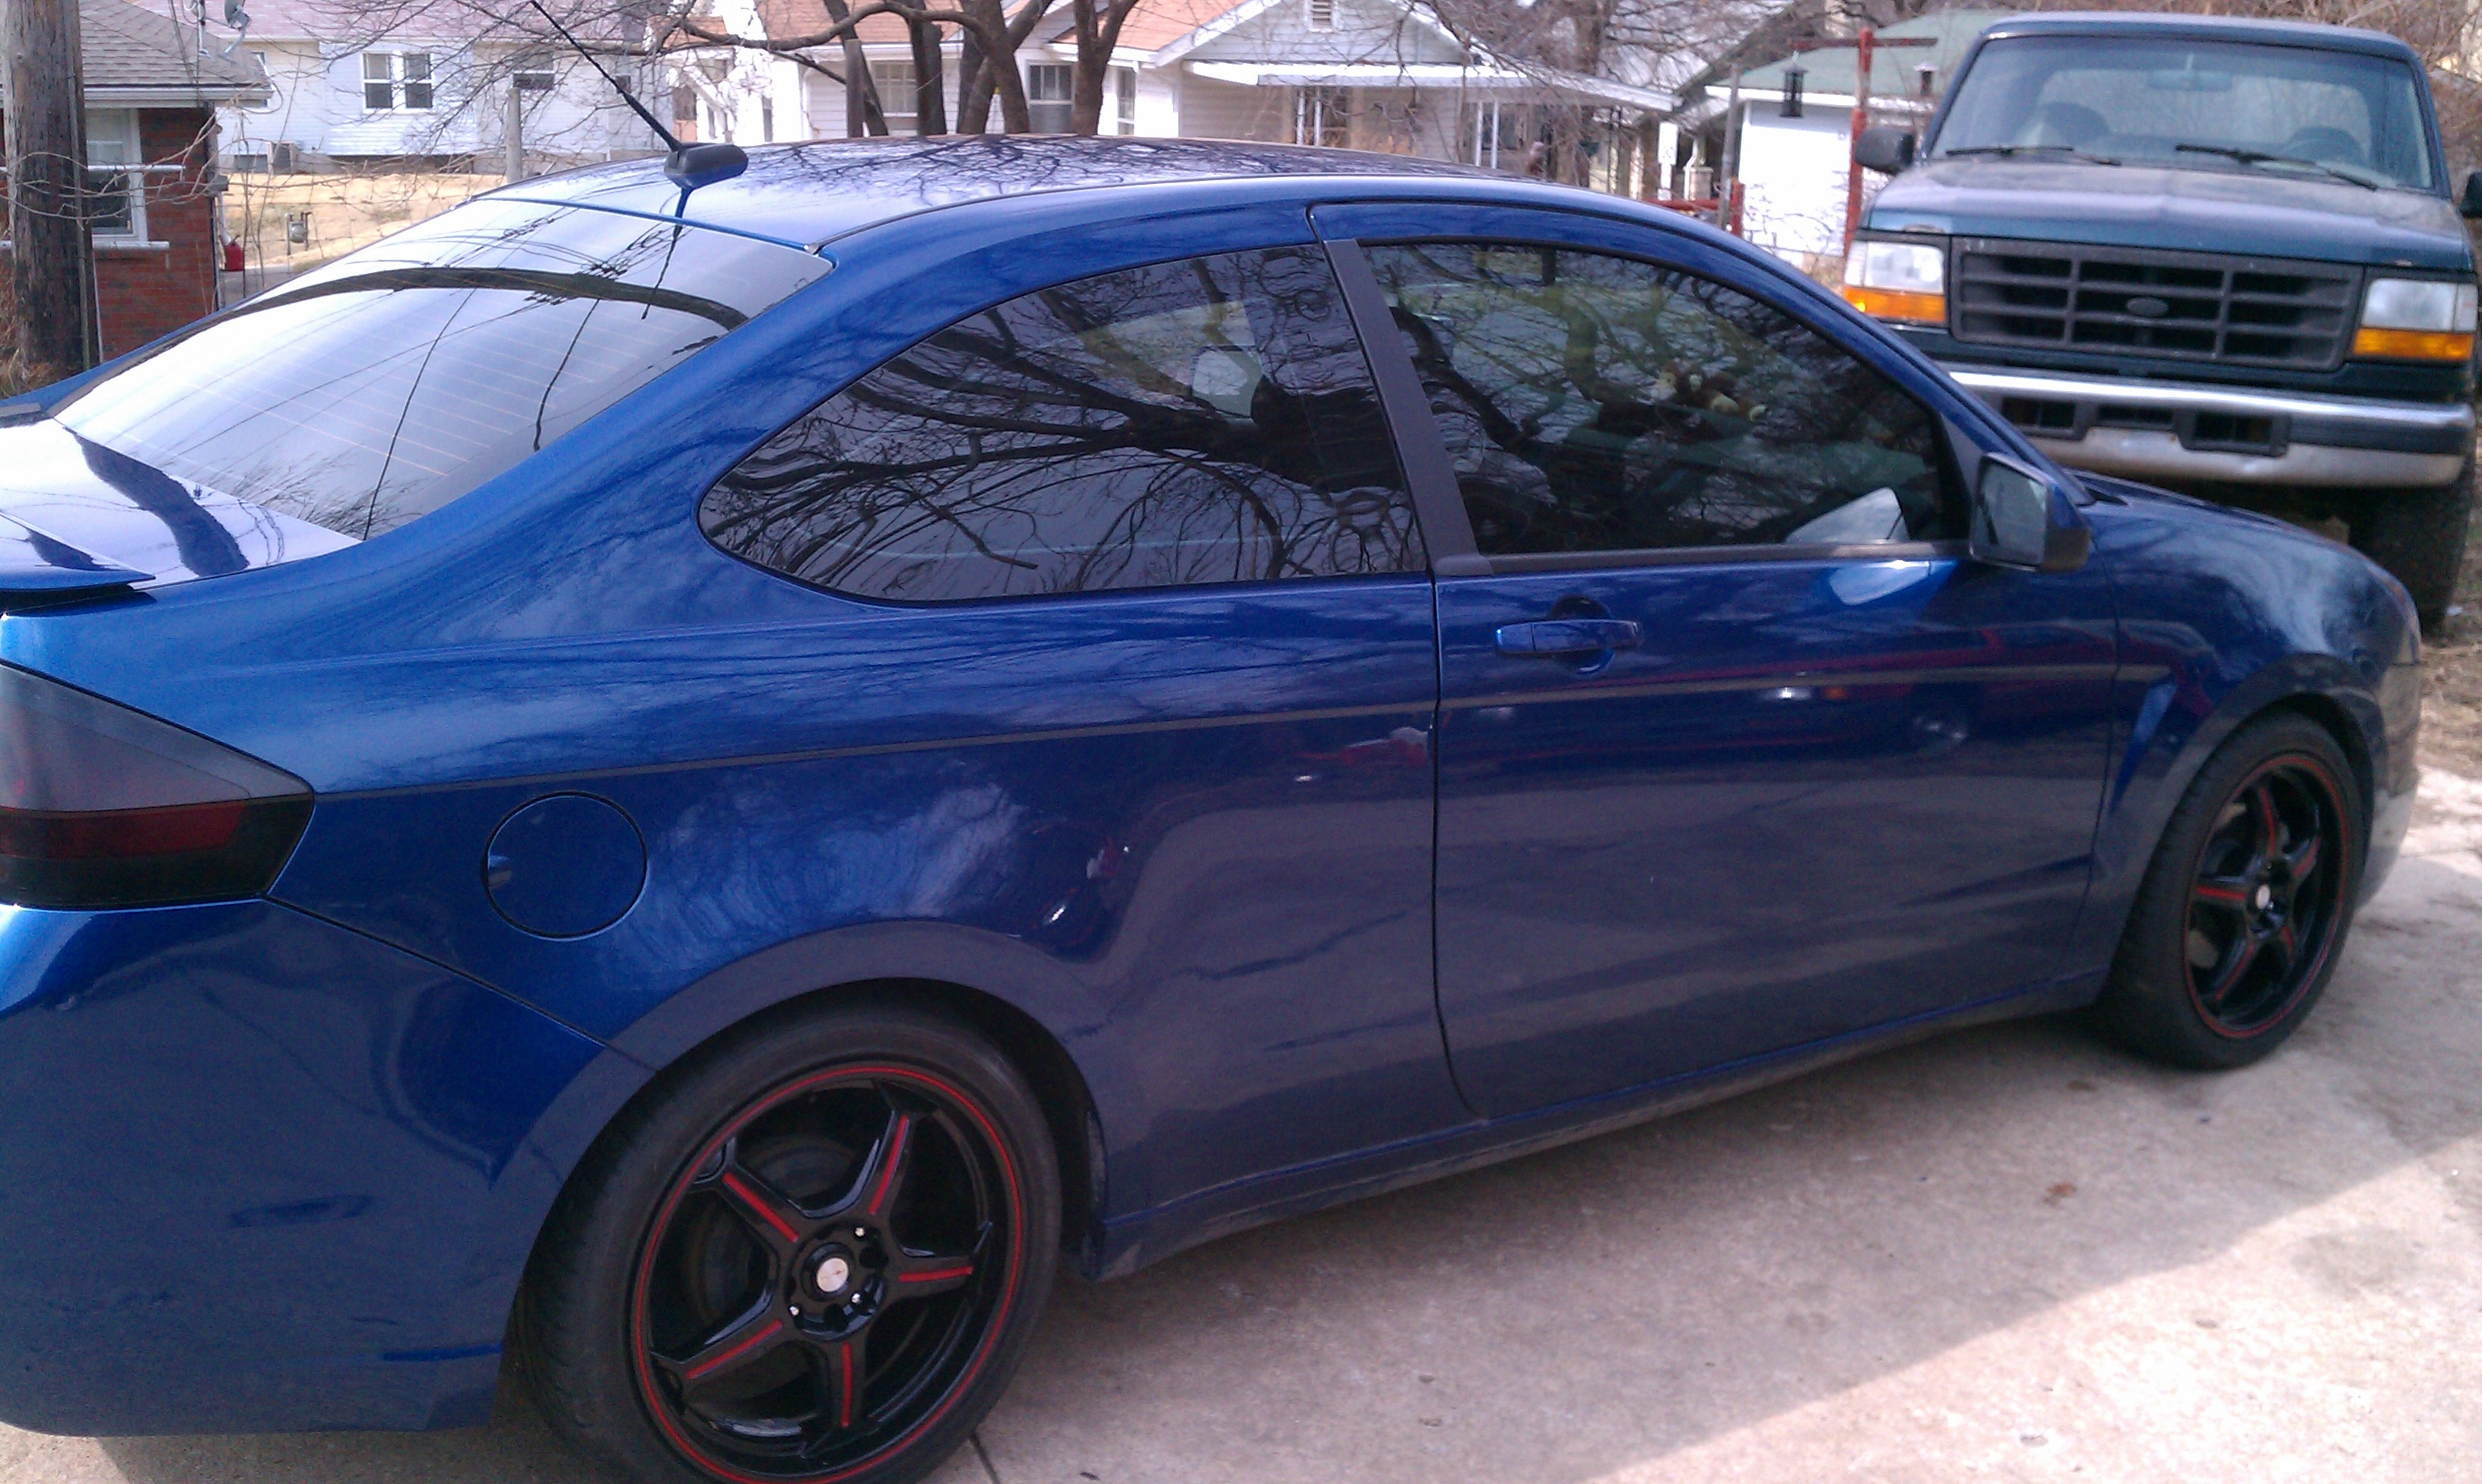 blazer8302 39 s 2009 ford focus se coupe 2d in kansas city ks. Black Bedroom Furniture Sets. Home Design Ideas